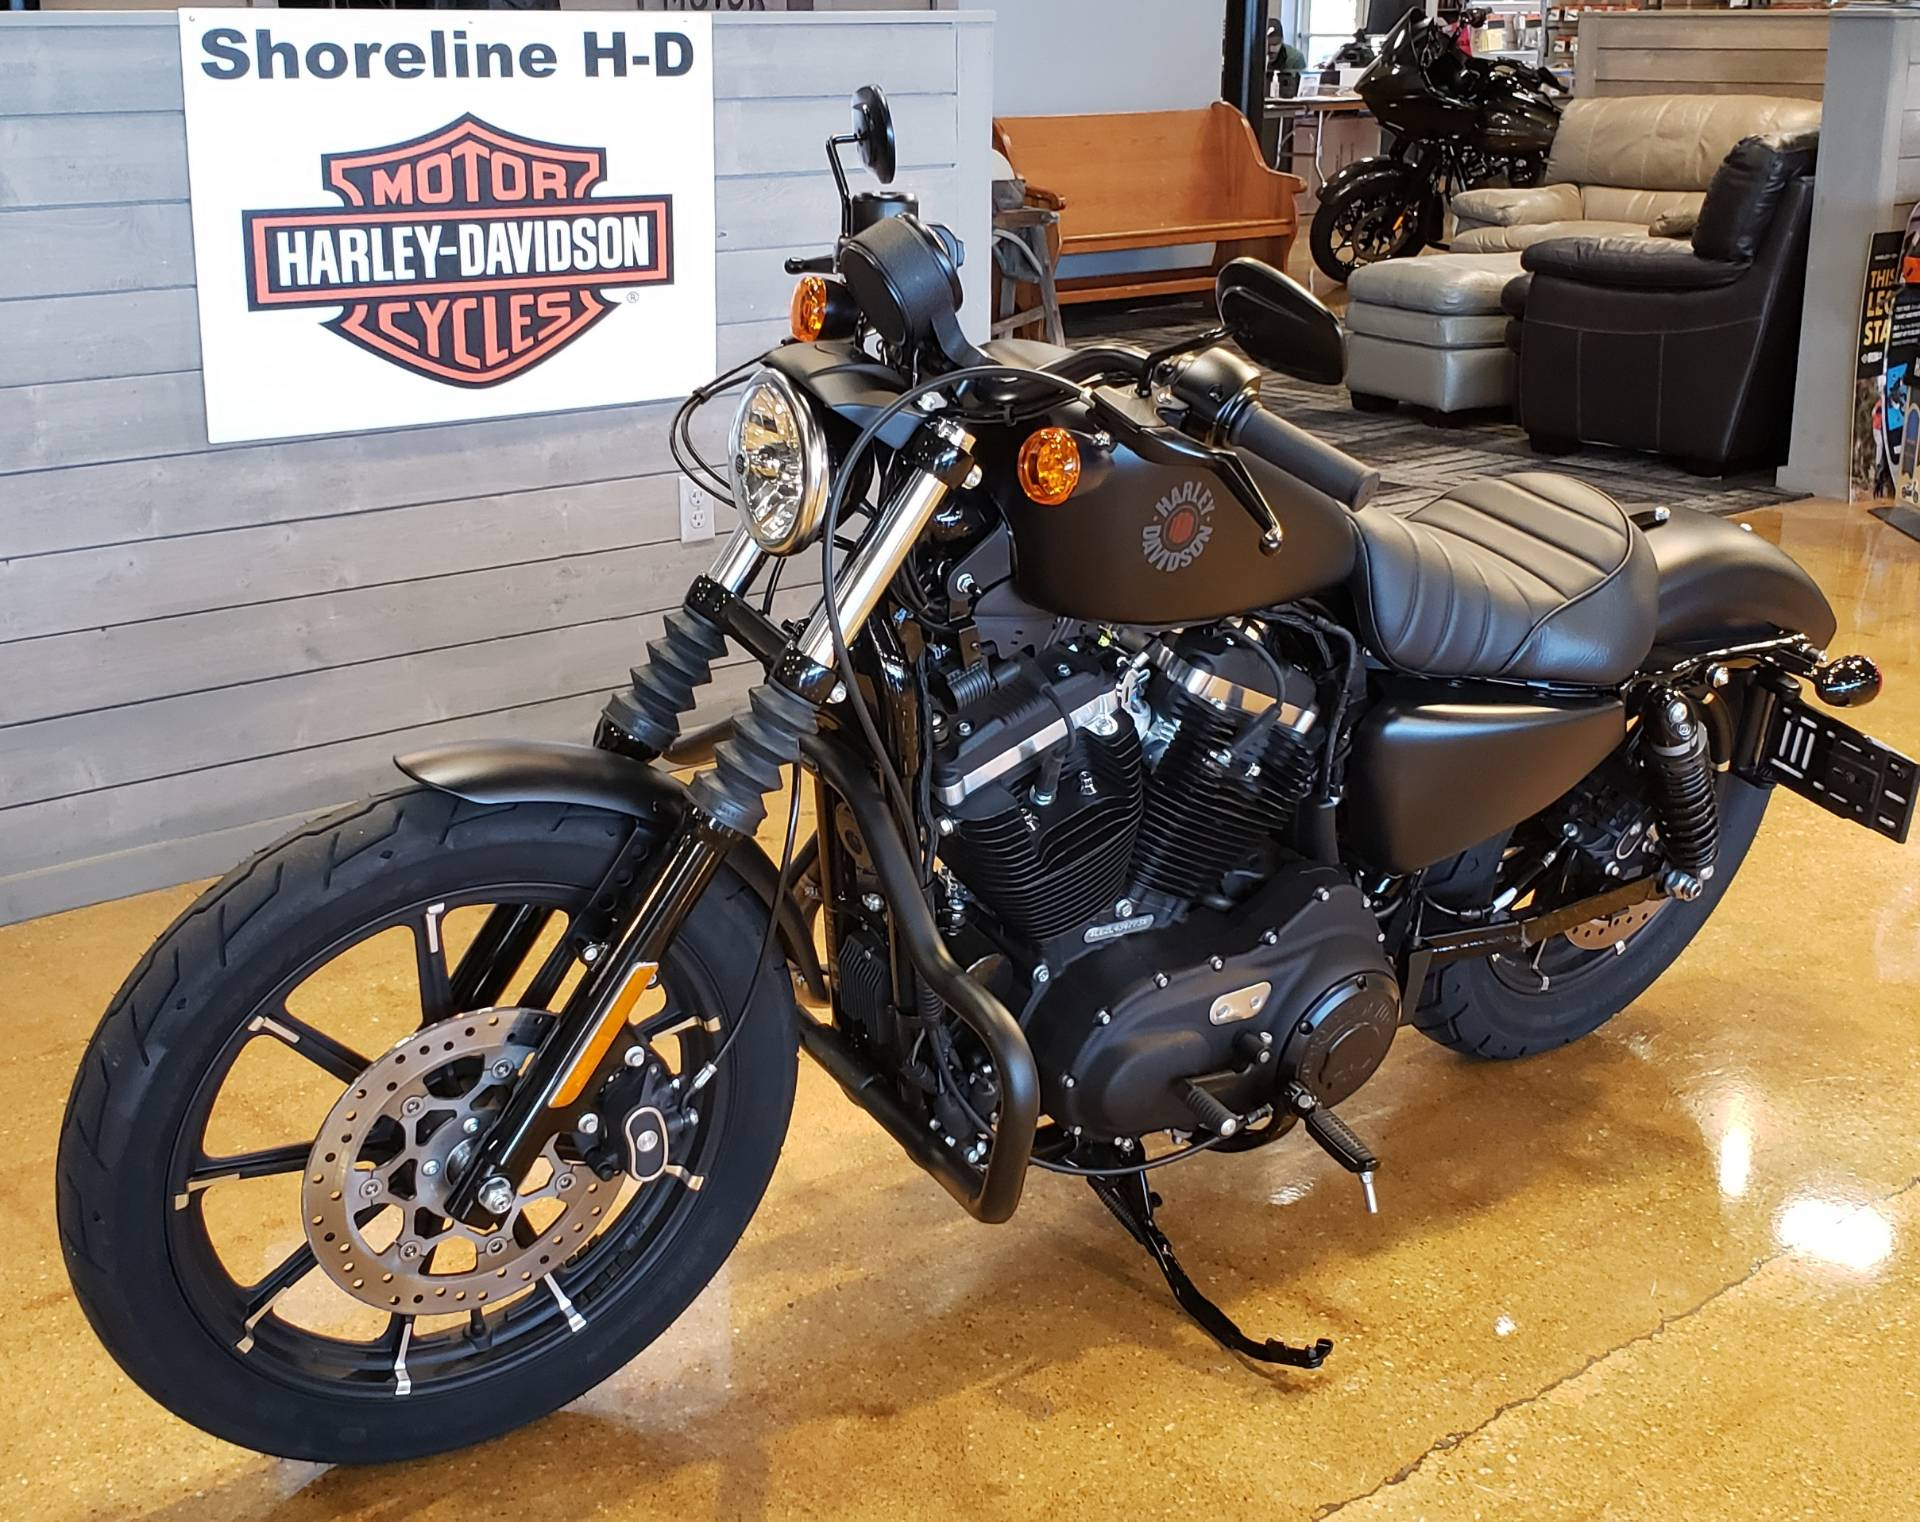 2020 Harley-Davidson IRON 883 in West Long Branch, New Jersey - Photo 5